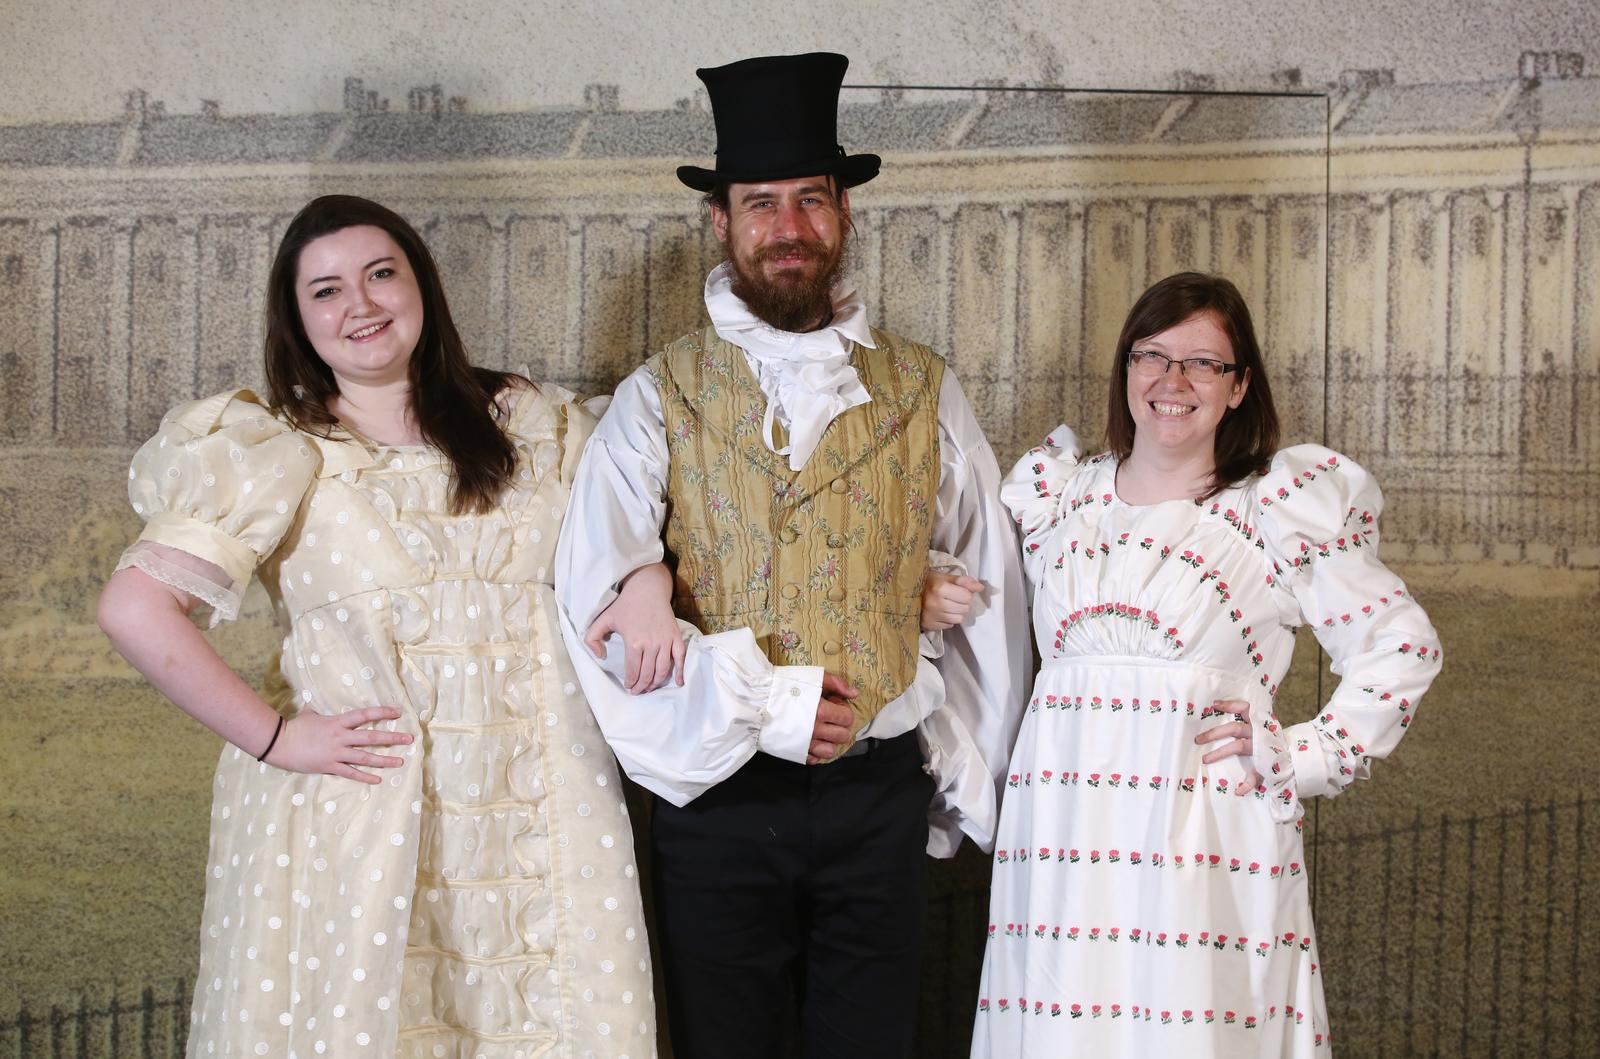 Image: Visitors dressing up at the Fashion Museum